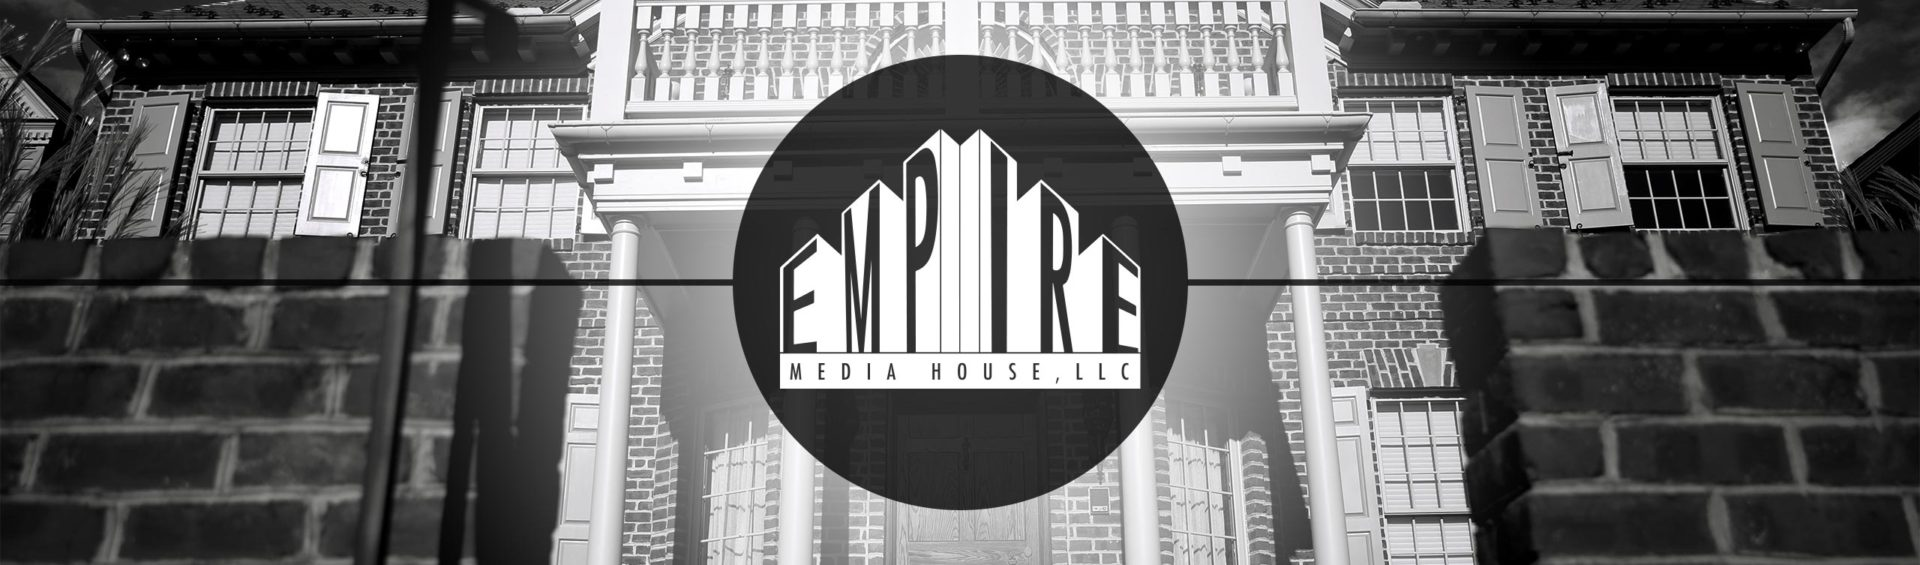 What is Empire Media House?